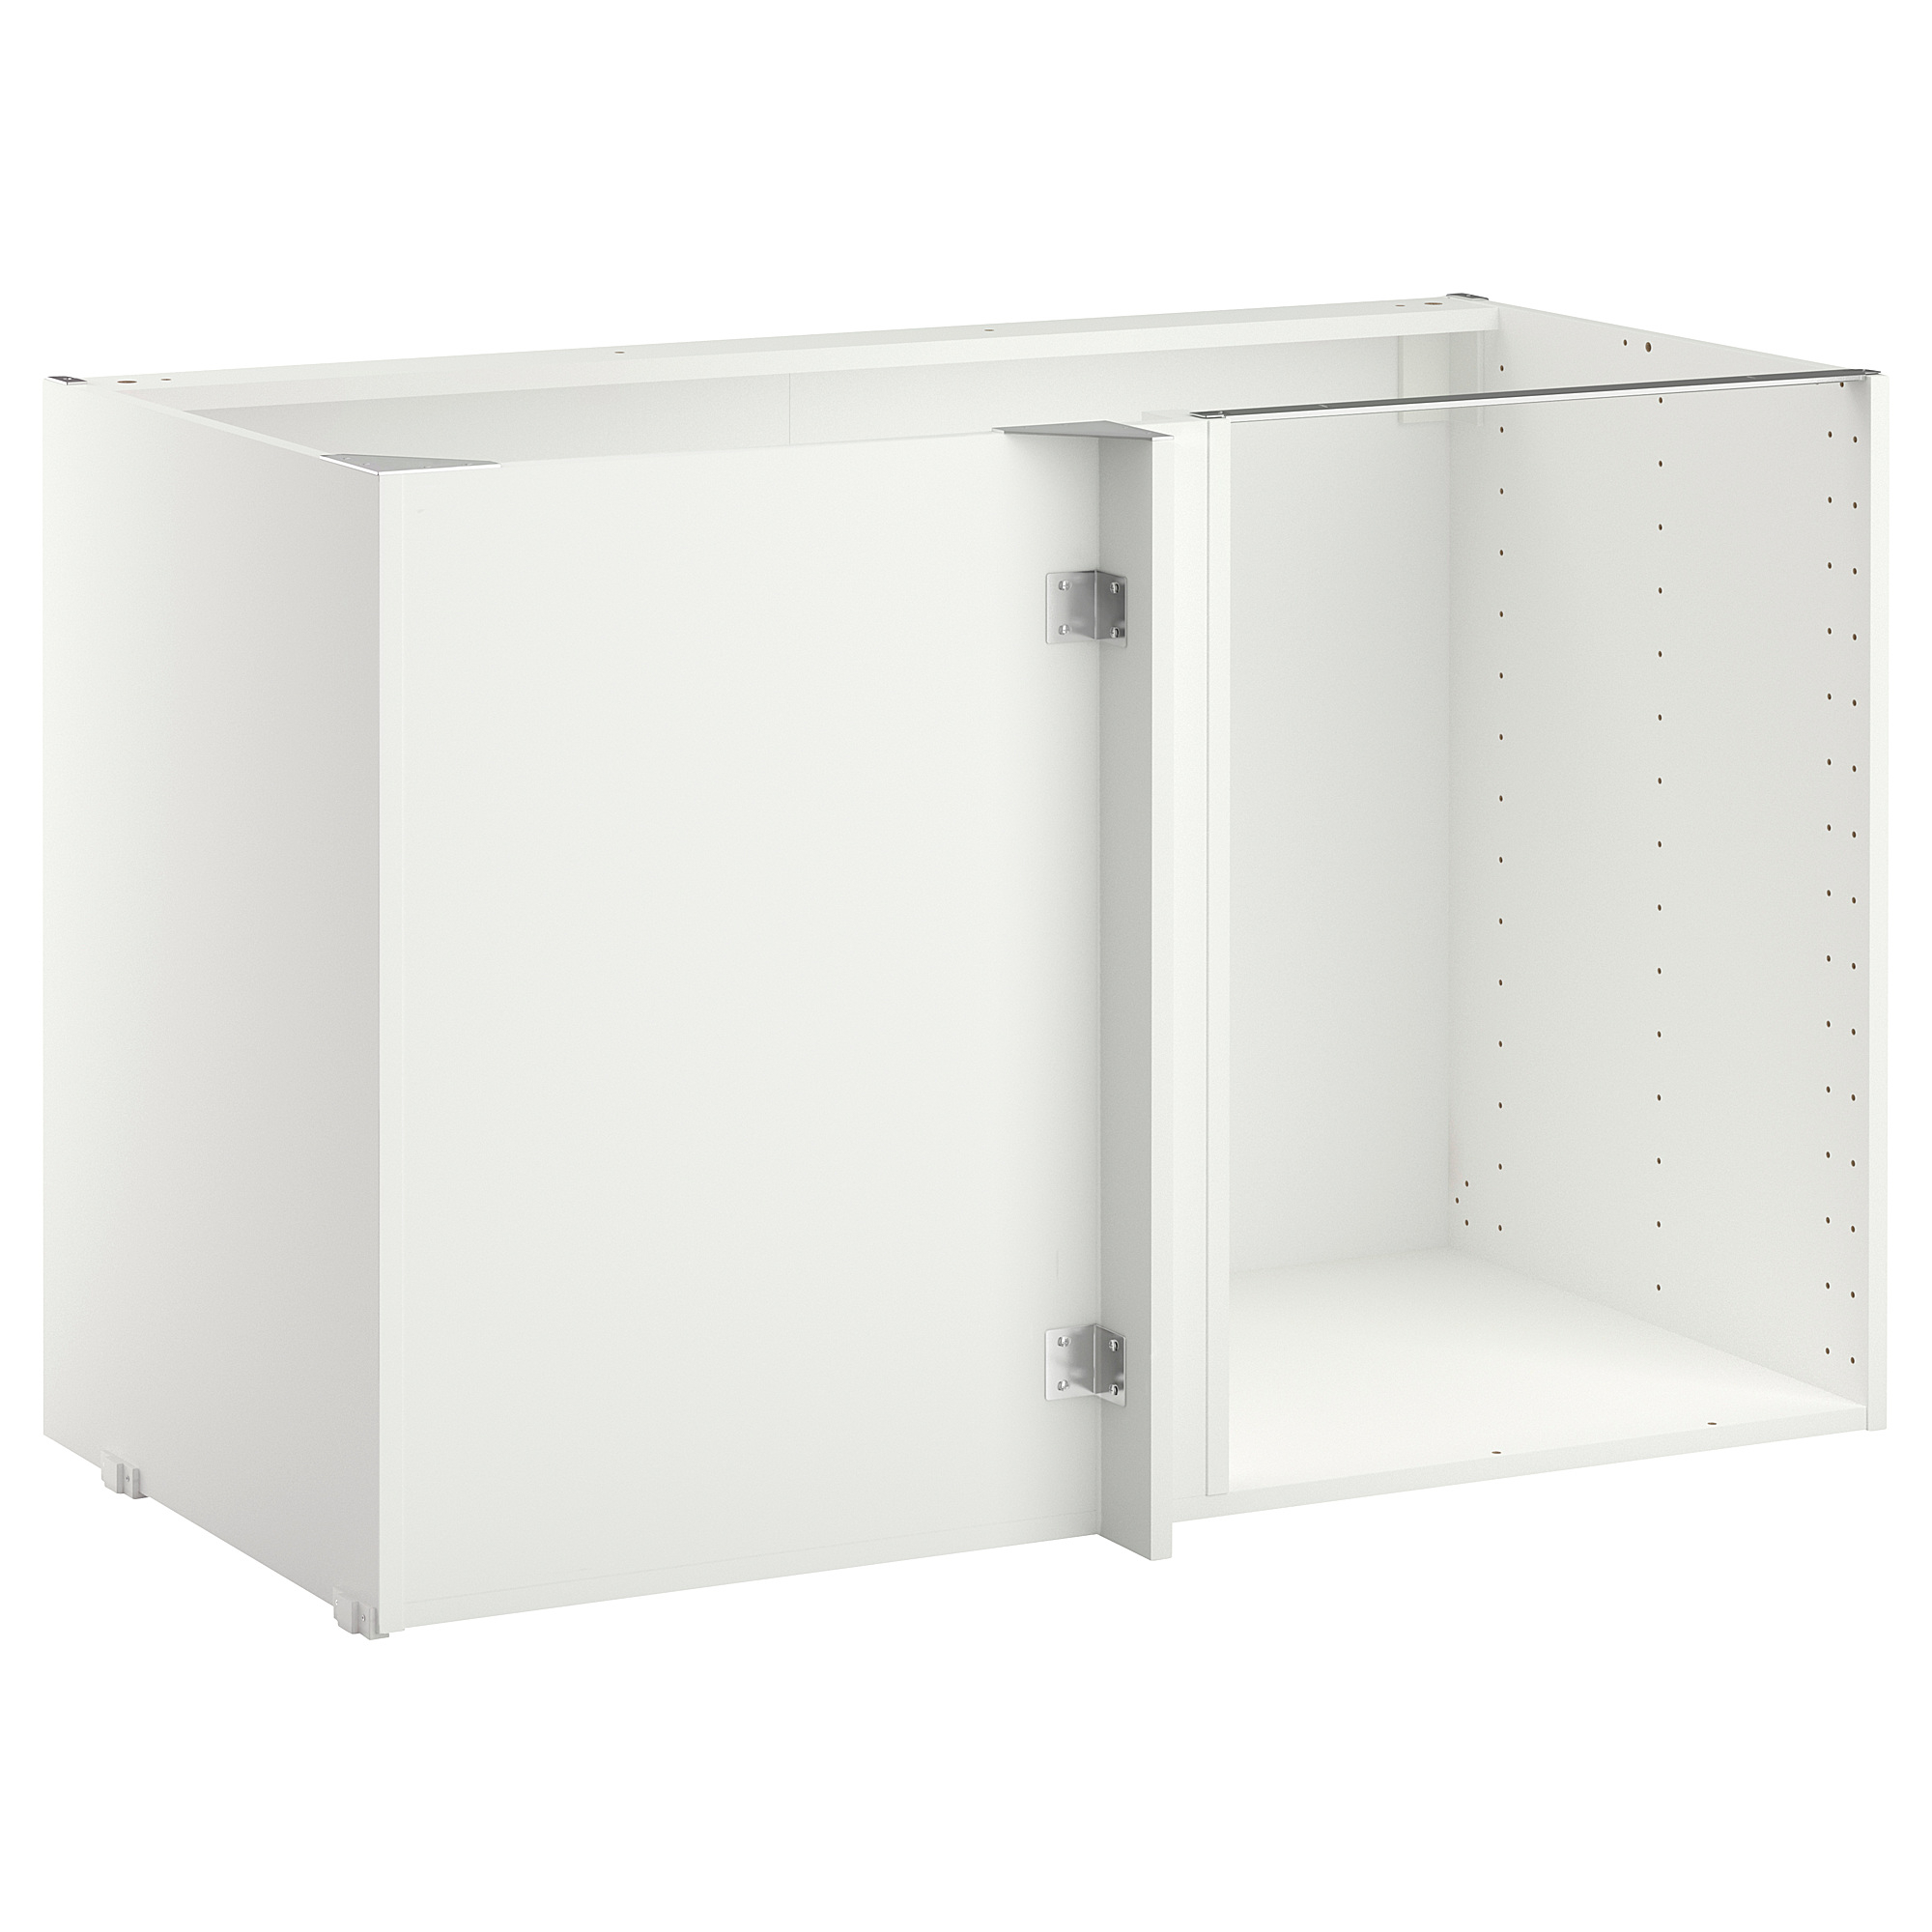 Widely Used Ikea Lithuania – Shop For Furniture, Lighting, Home Accessories & More With Regard To White Wash 4 Door Galvanized Sideboards (View 19 of 20)